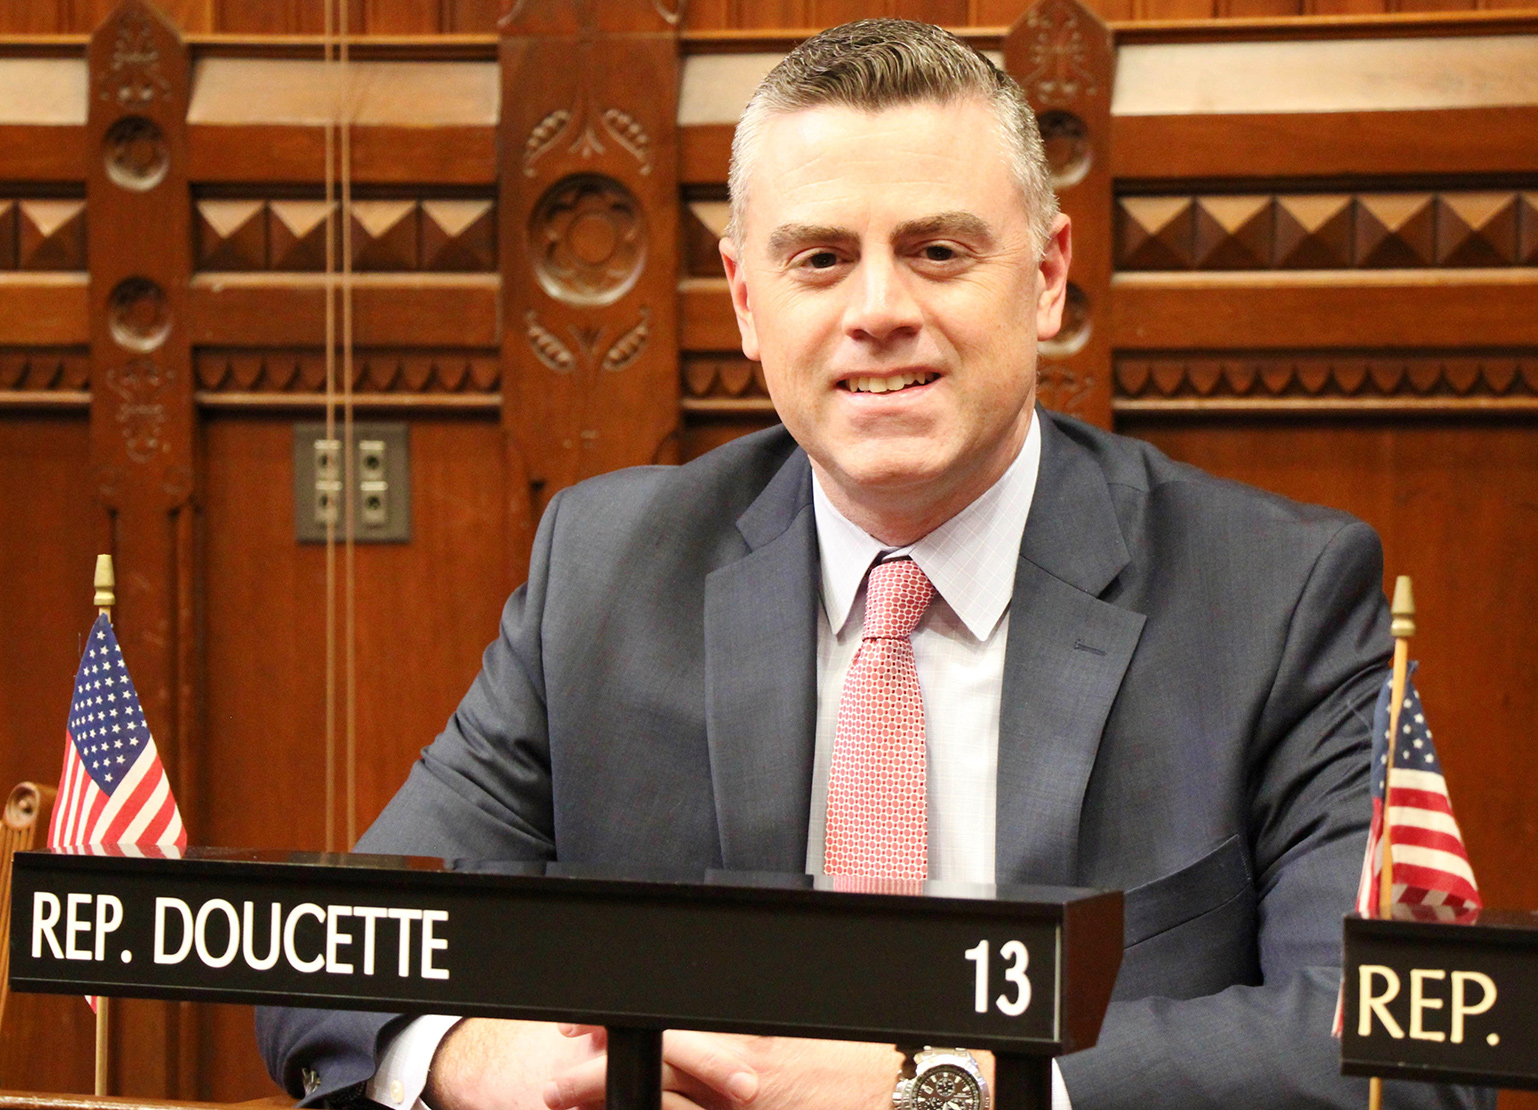 Covid 19 Updates Cvs Testing Thermometers For Small Businesses More Connecticut House Democrats